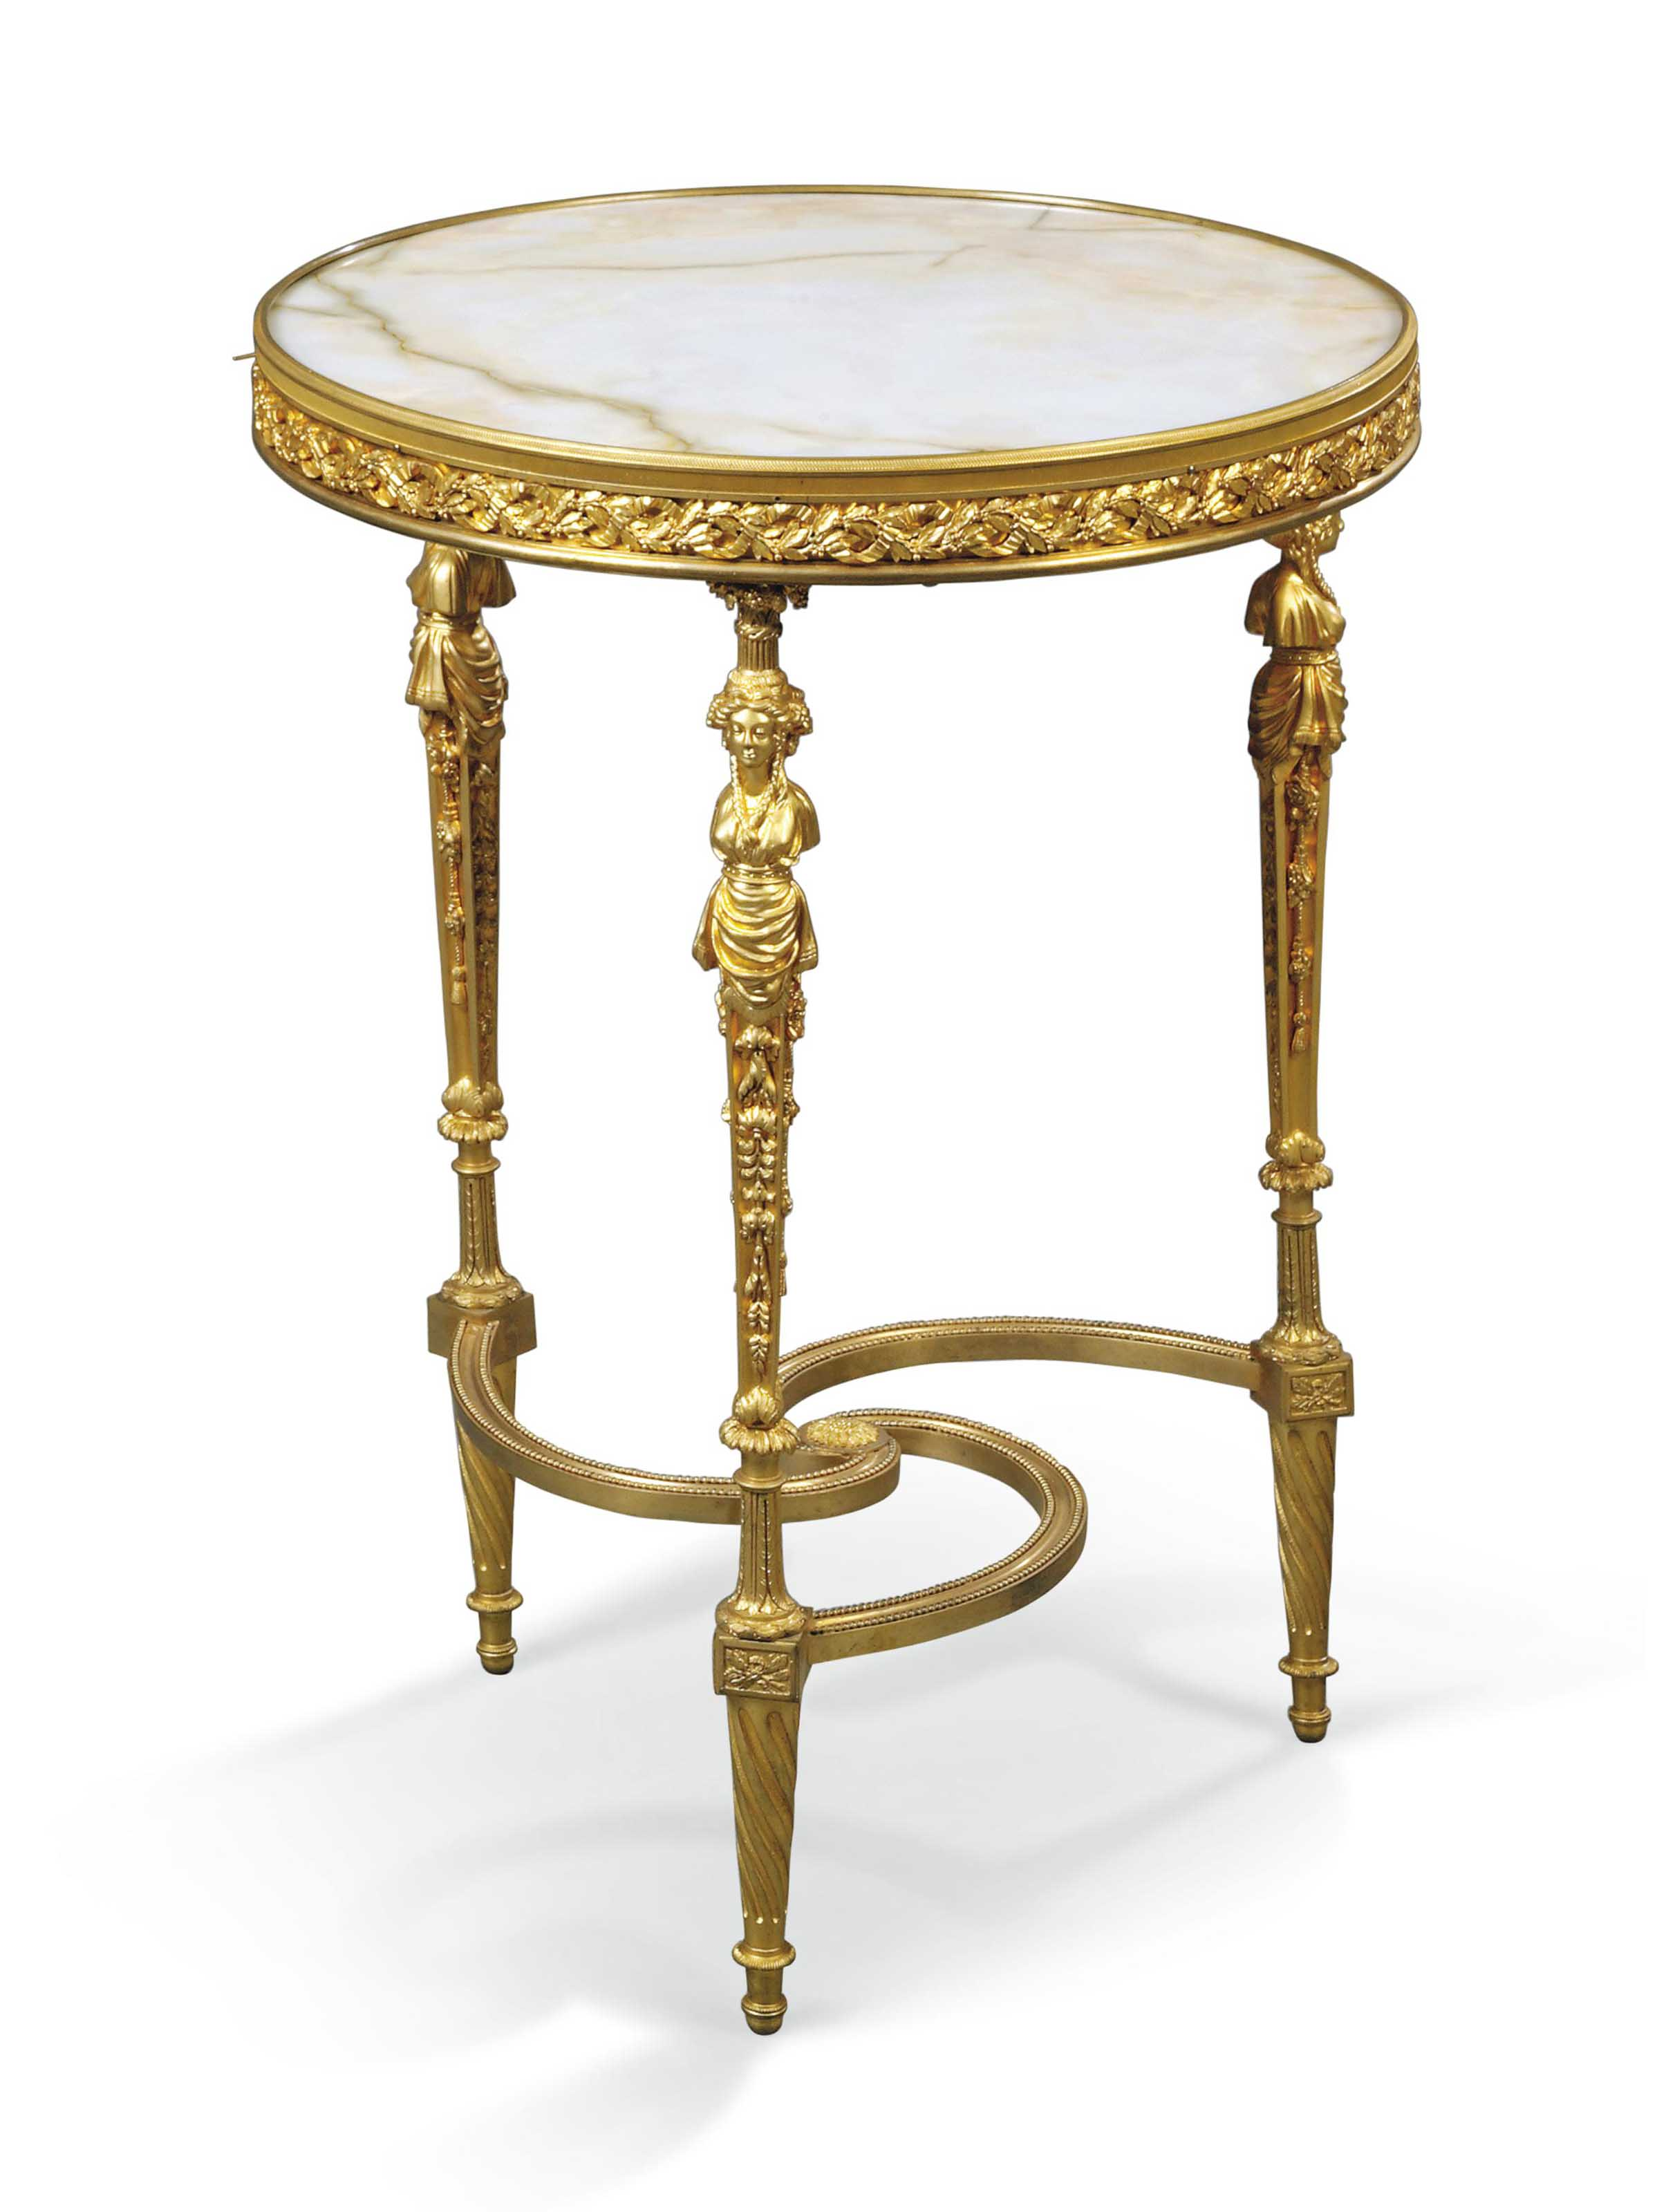 A FRENCH ORMOLU AND ONYX GUERI